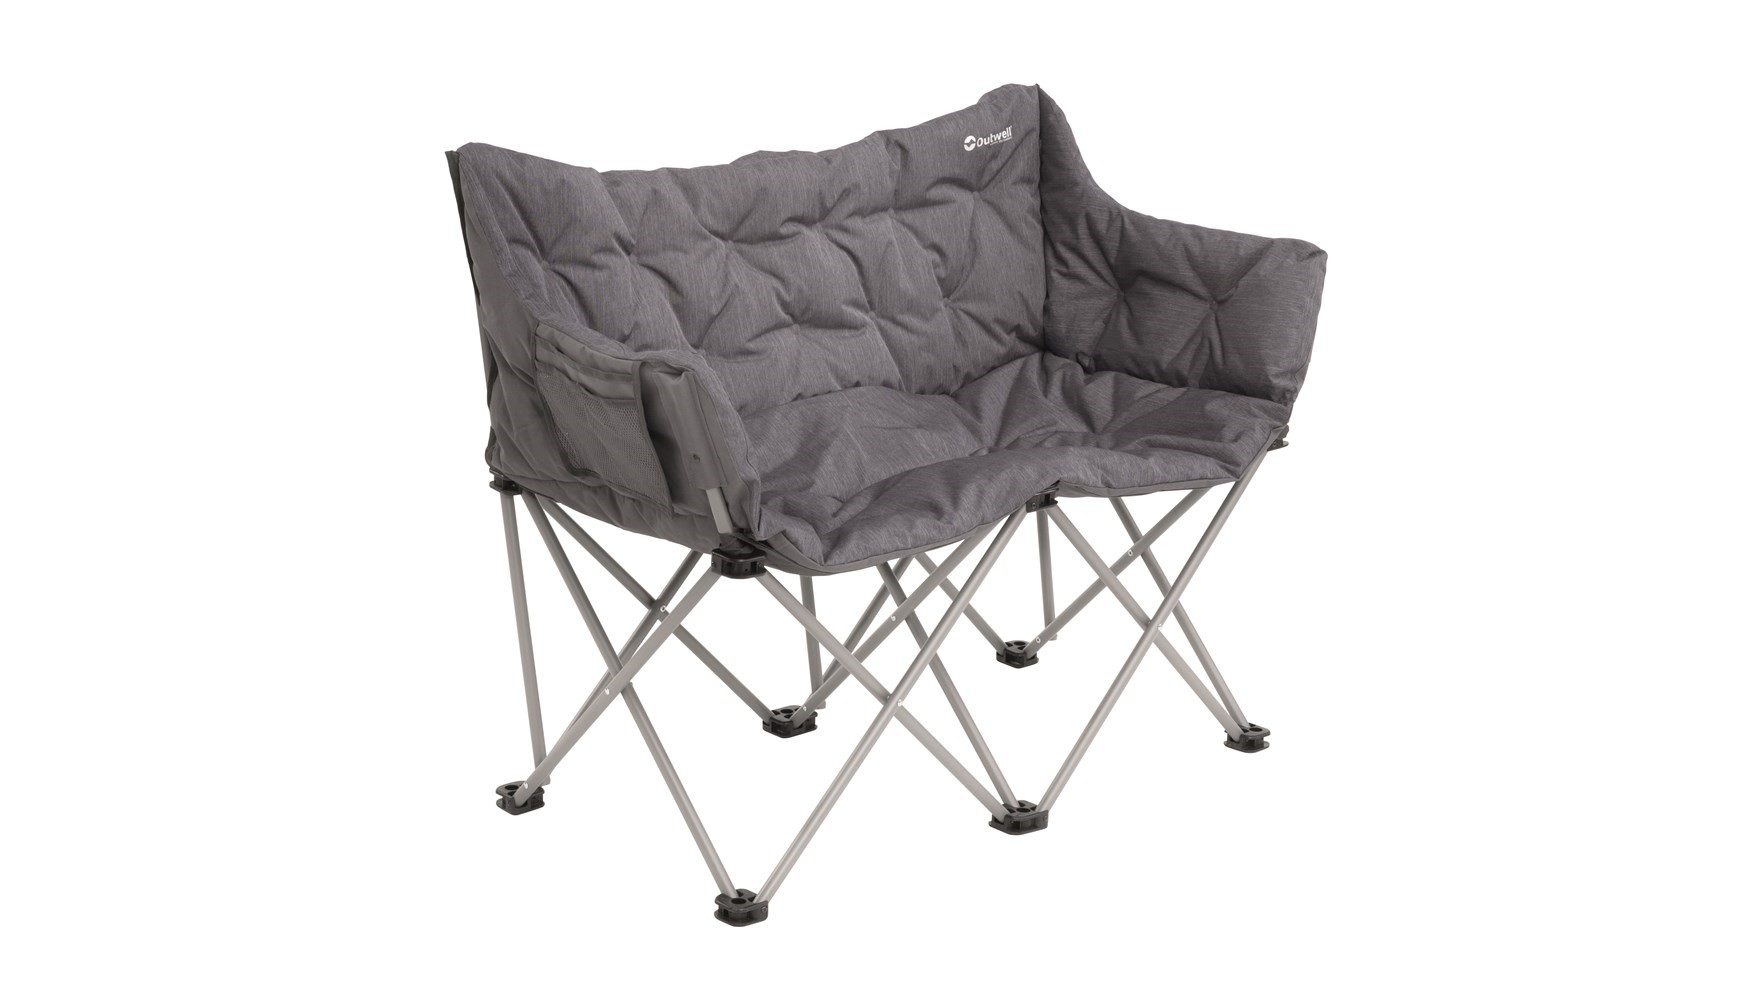 Outwell Sardis Lake Duo Camp Chair